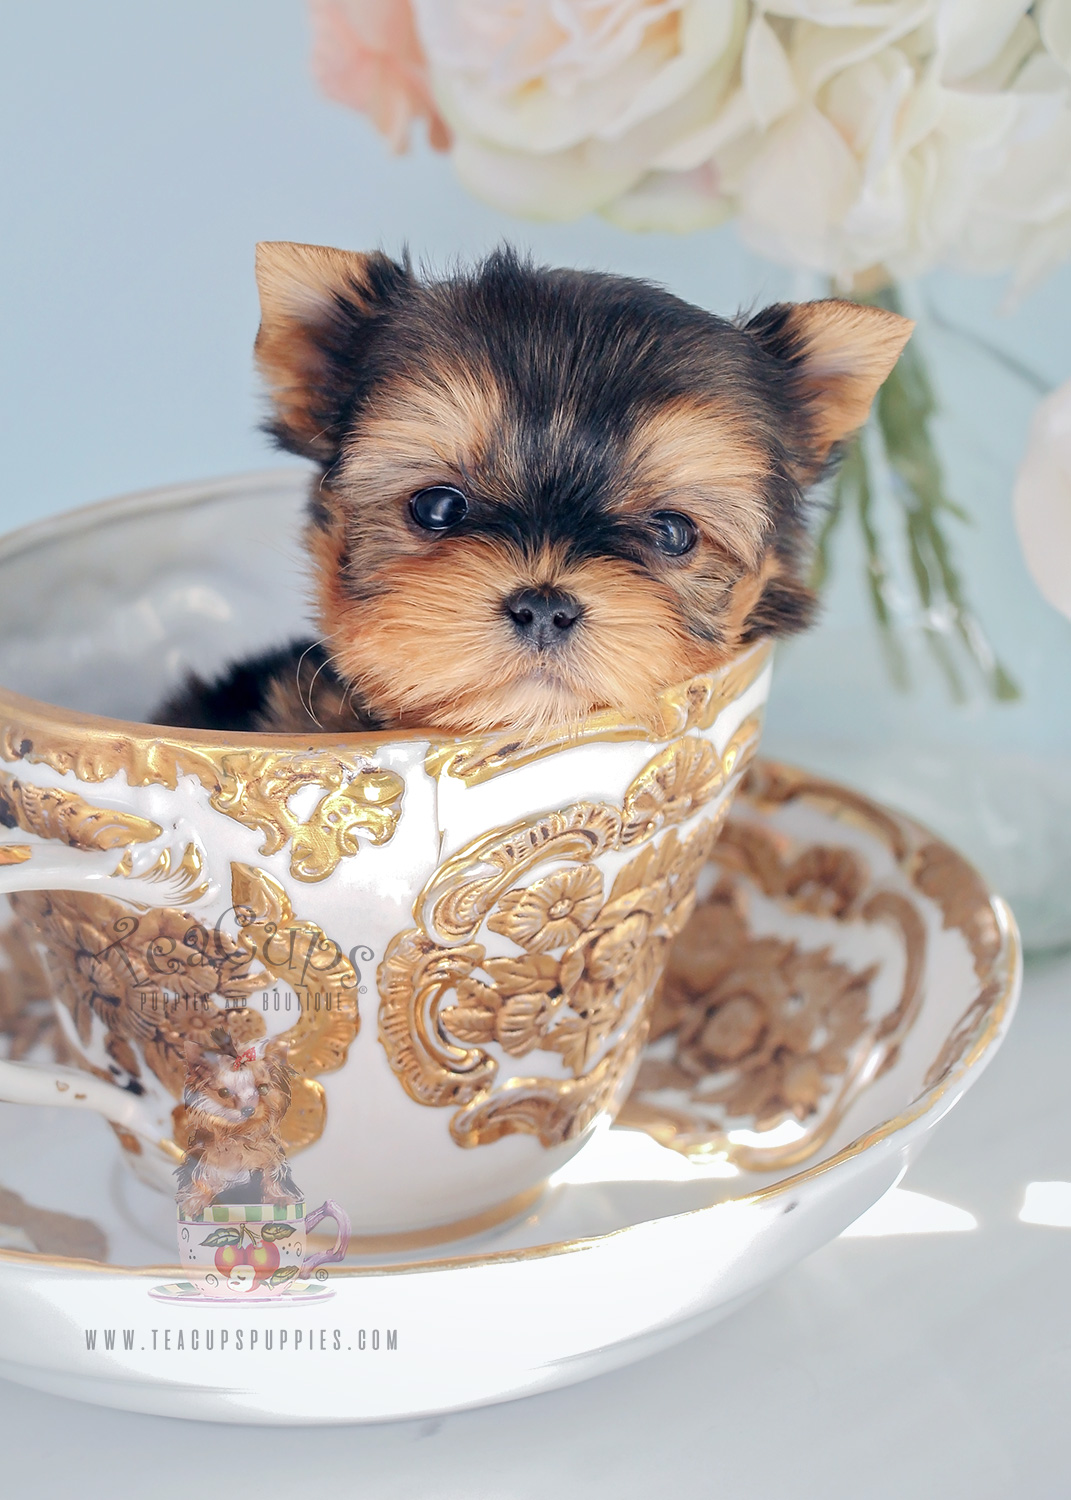 For Sale Teacup Puppies #281 Teacup Morkie Puppy